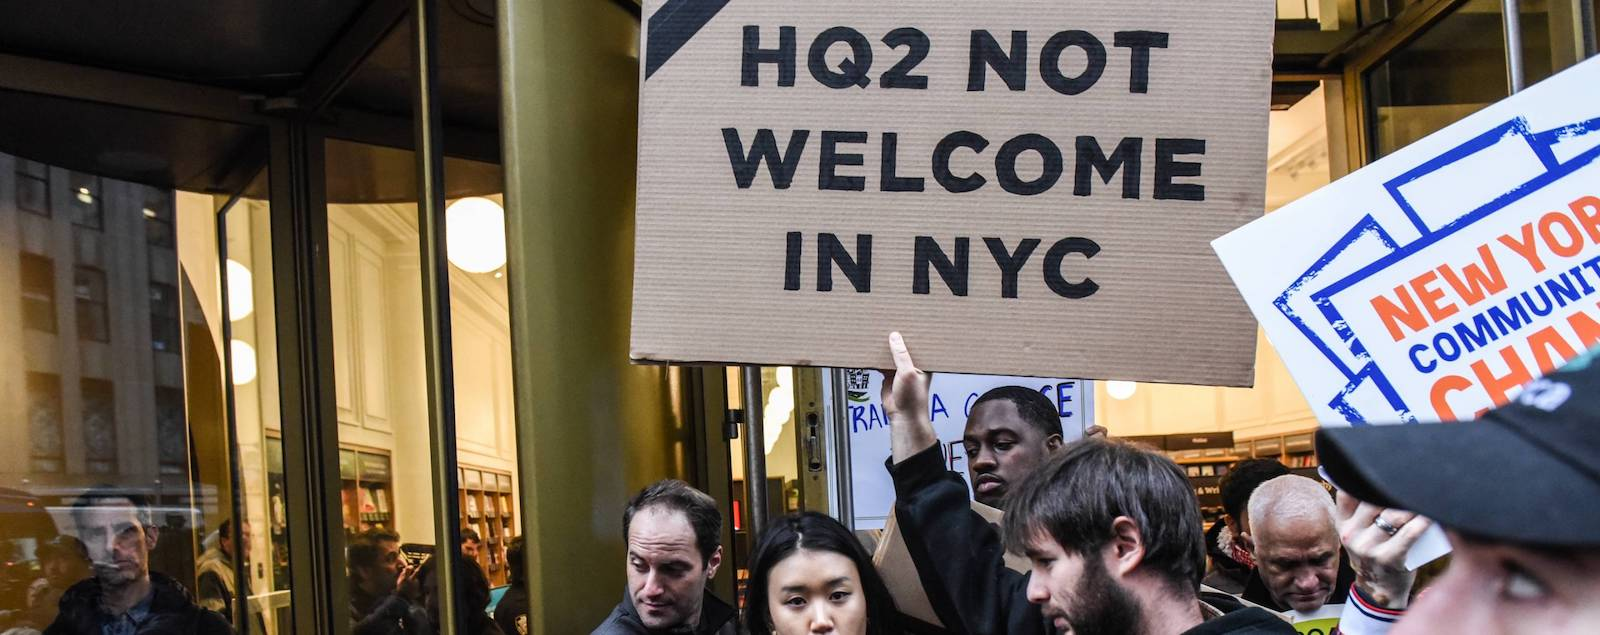 Amazon decided it will not be opening its second headquarters in New York City (Photo: Wikimedia Commons)